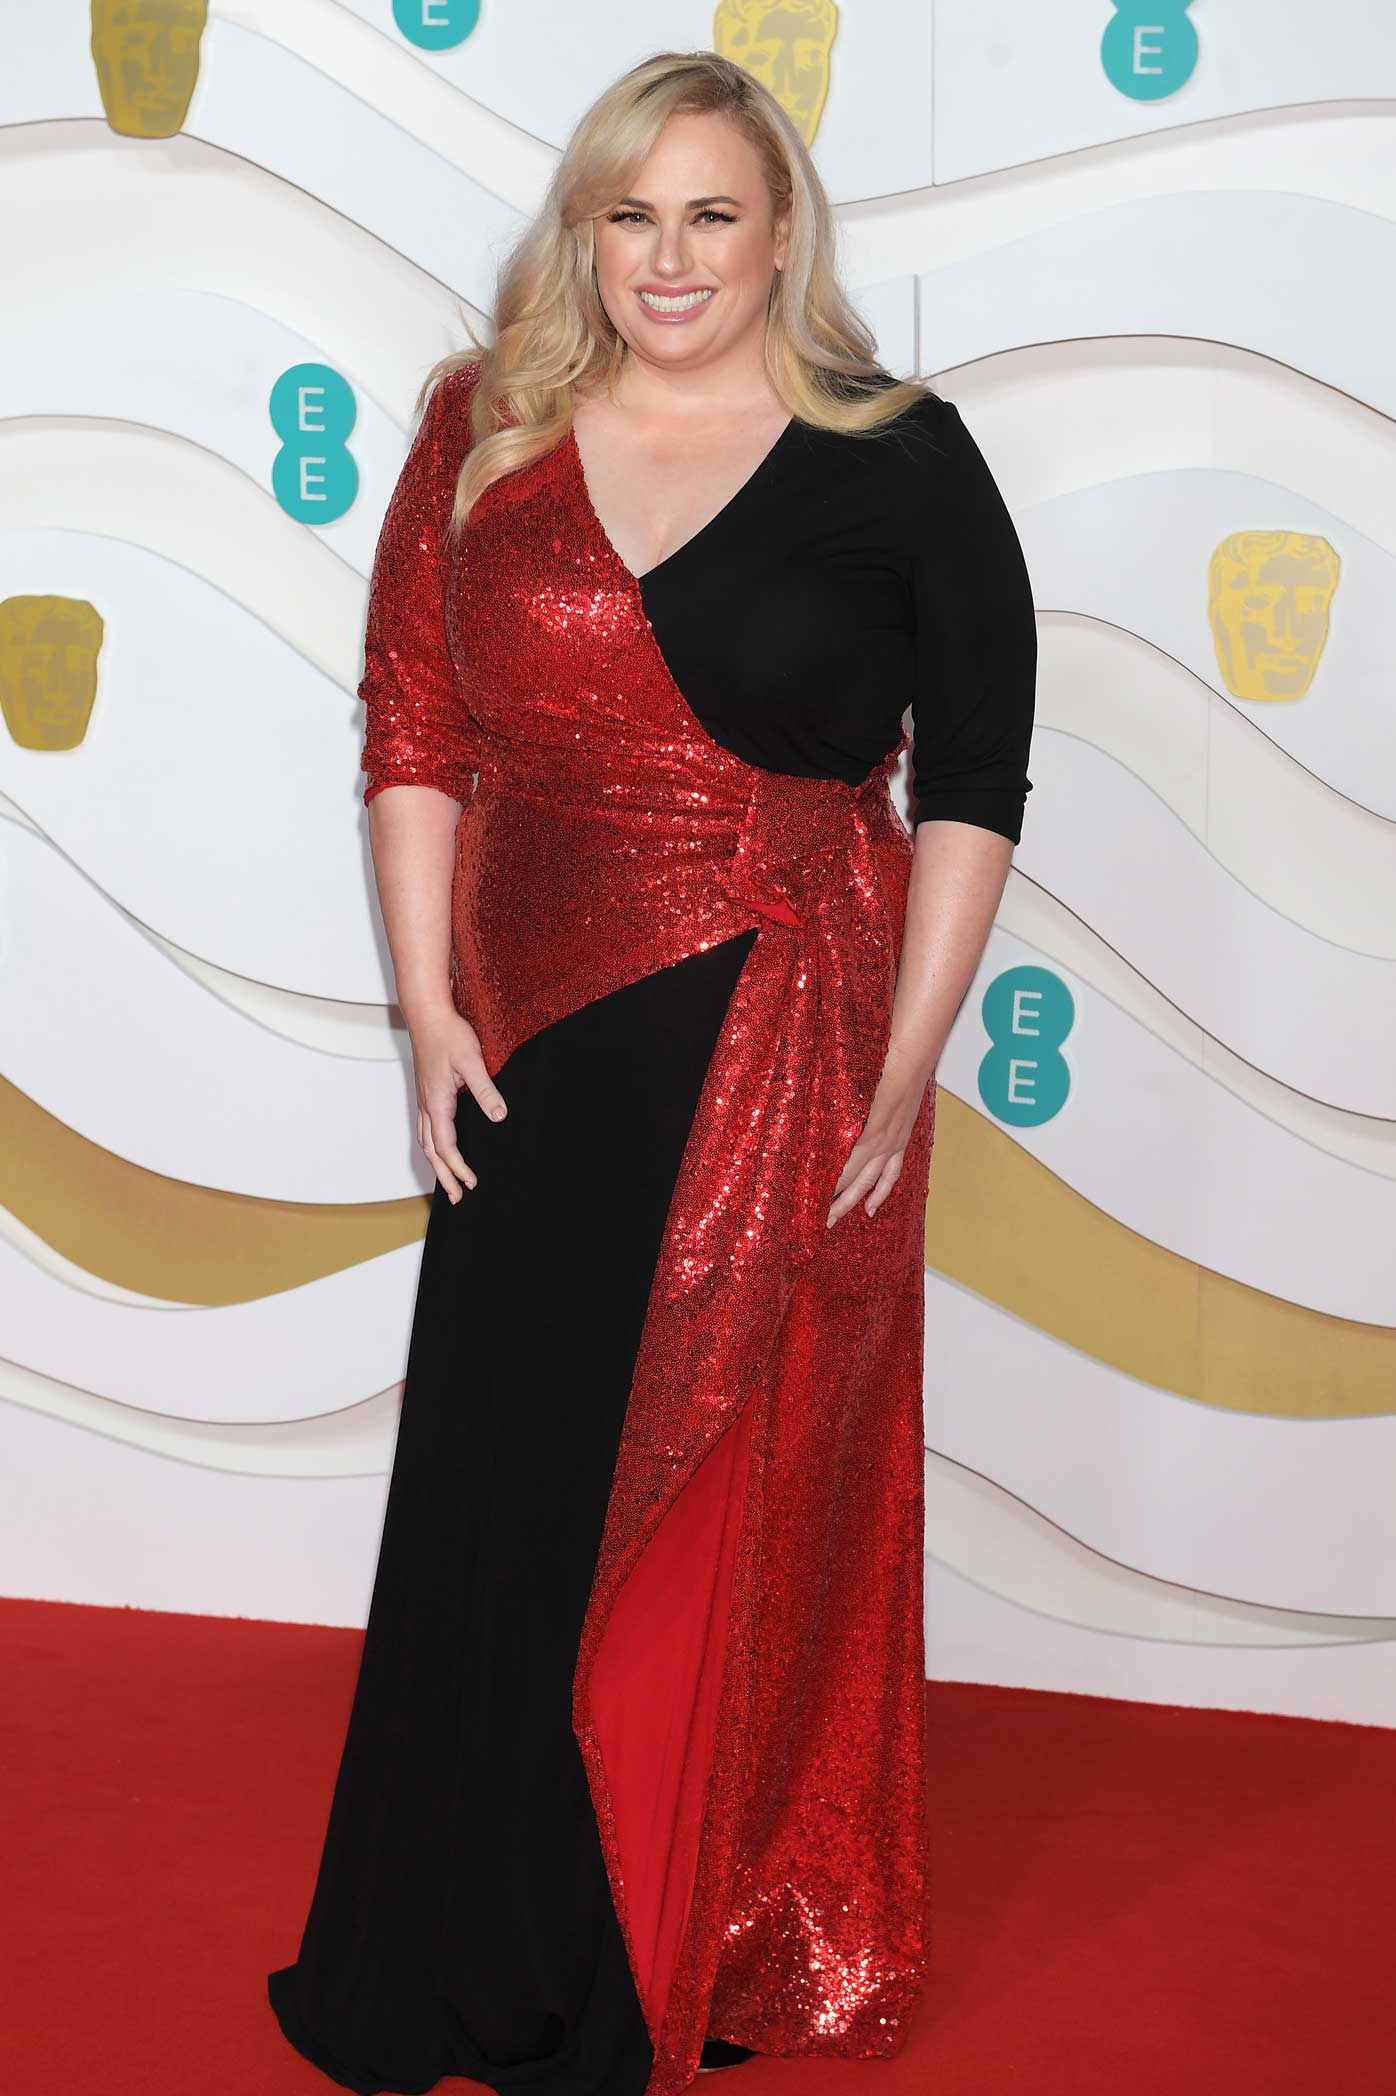 Rebel Wilson arrives at the EE British Academy Film Awards 2020 at Royal Albert Hall on February 2, 2020 in London, England.